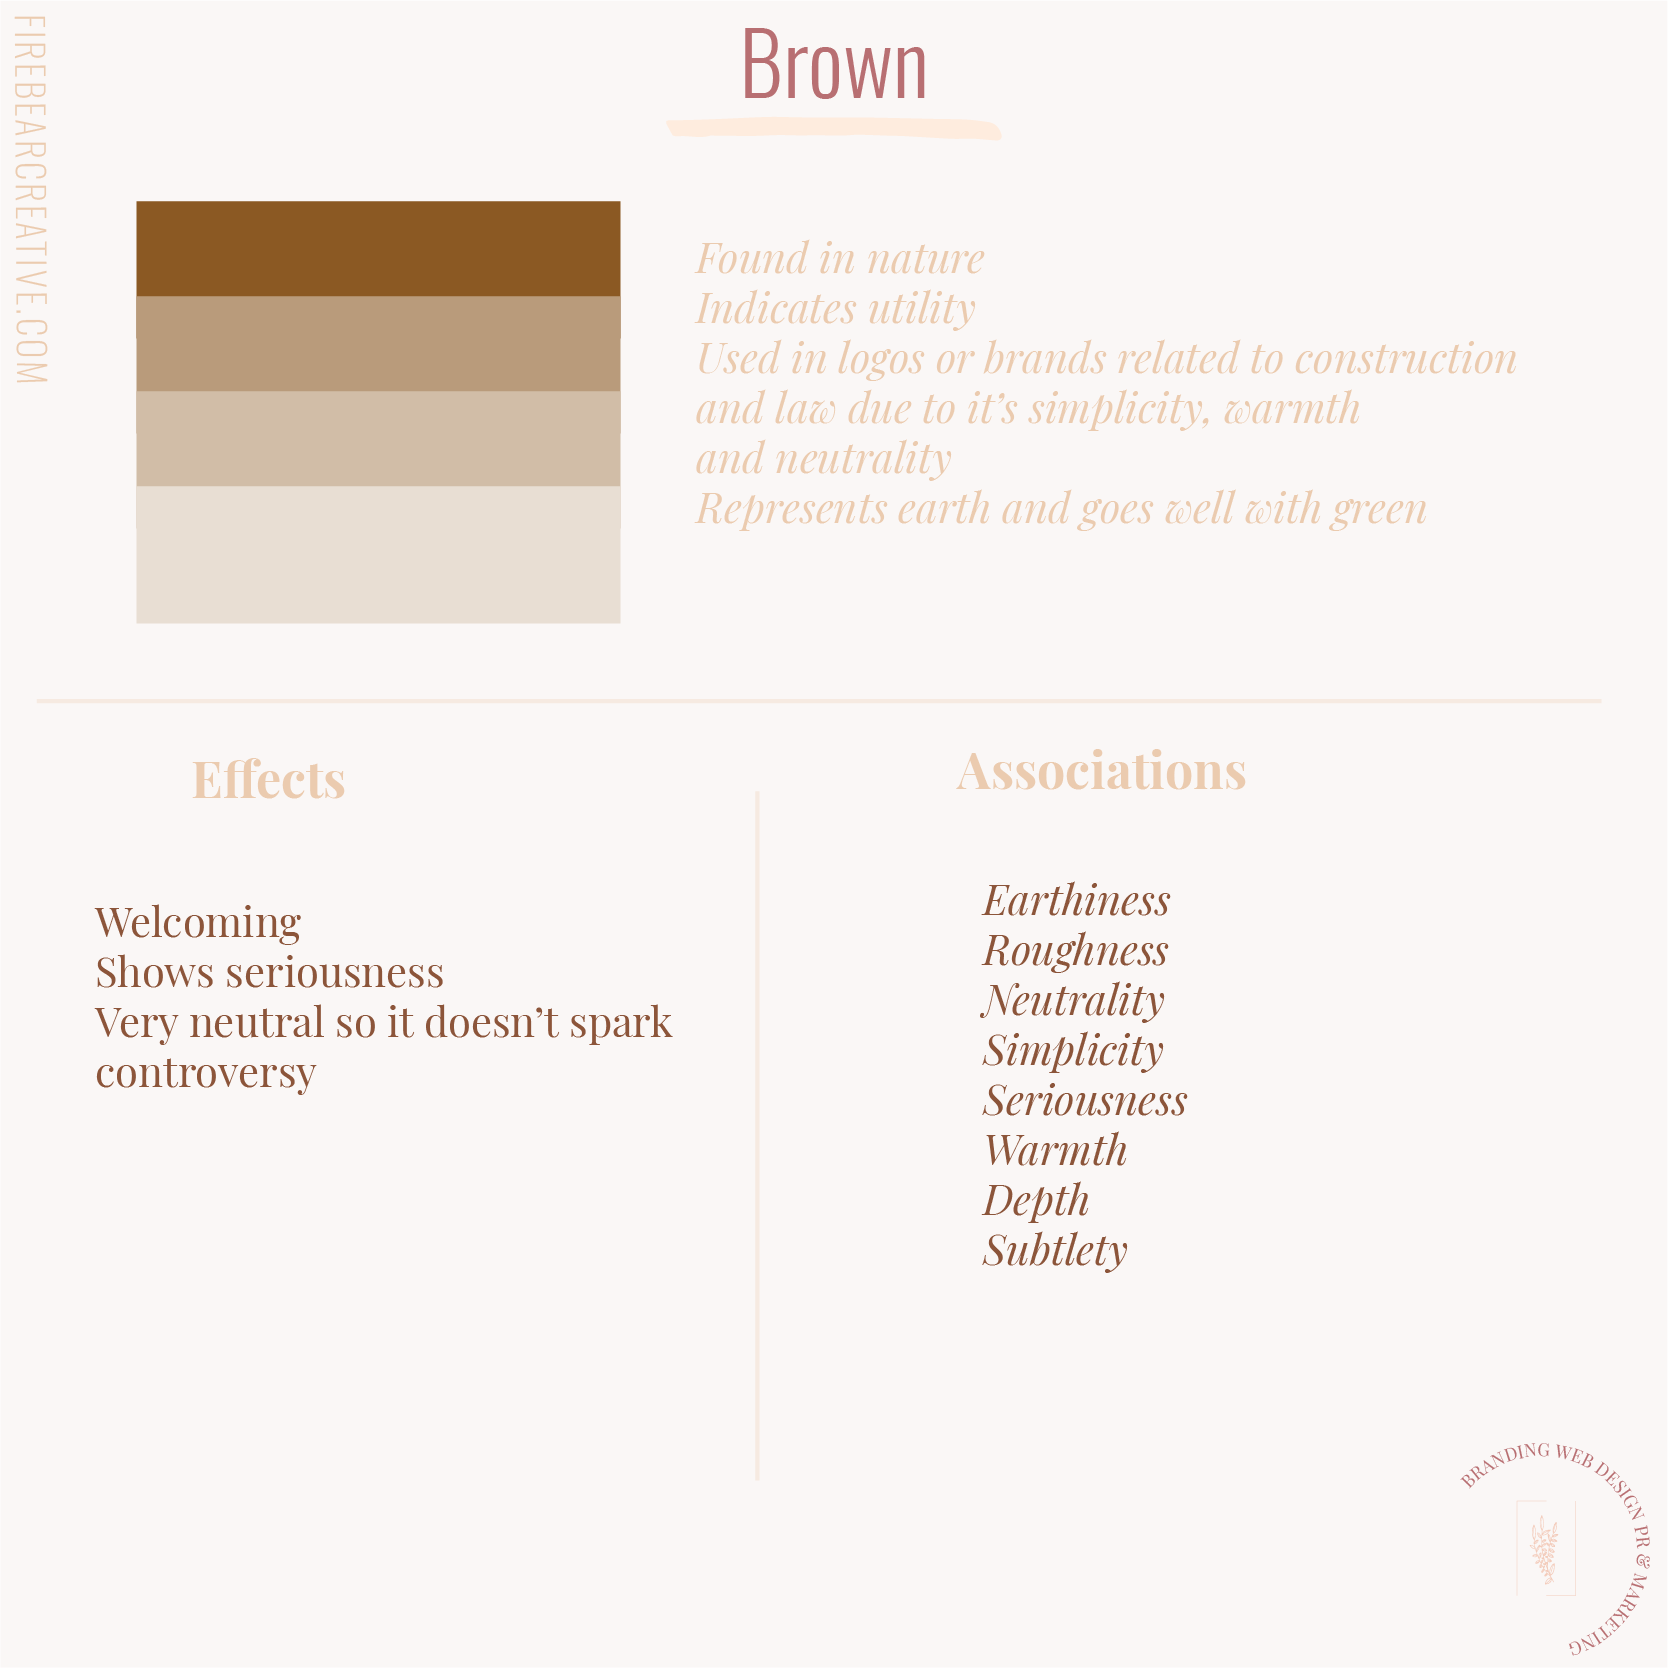 Color Brown